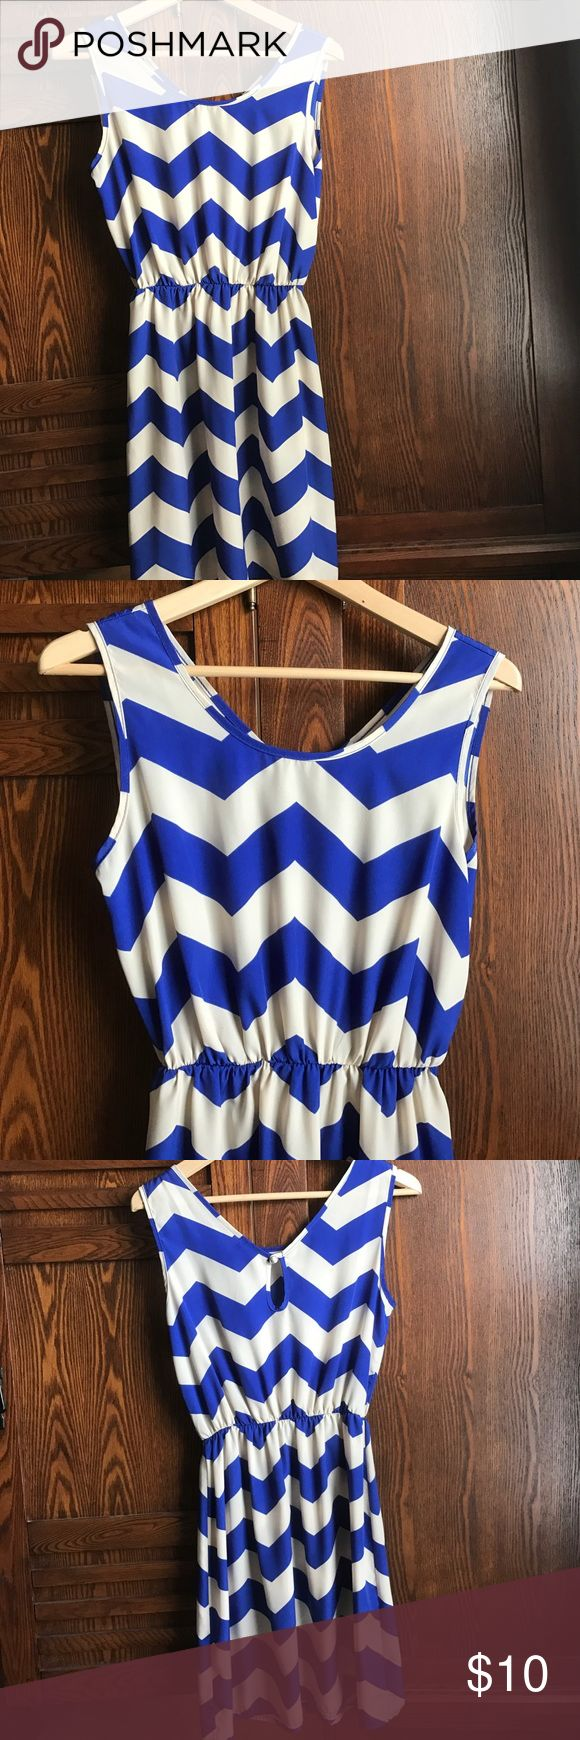 Chevron dress Fun, royal blue chevron dress. Length is just above the knee (but I'm short). Unlined, with a small key hole in the back. Dresses